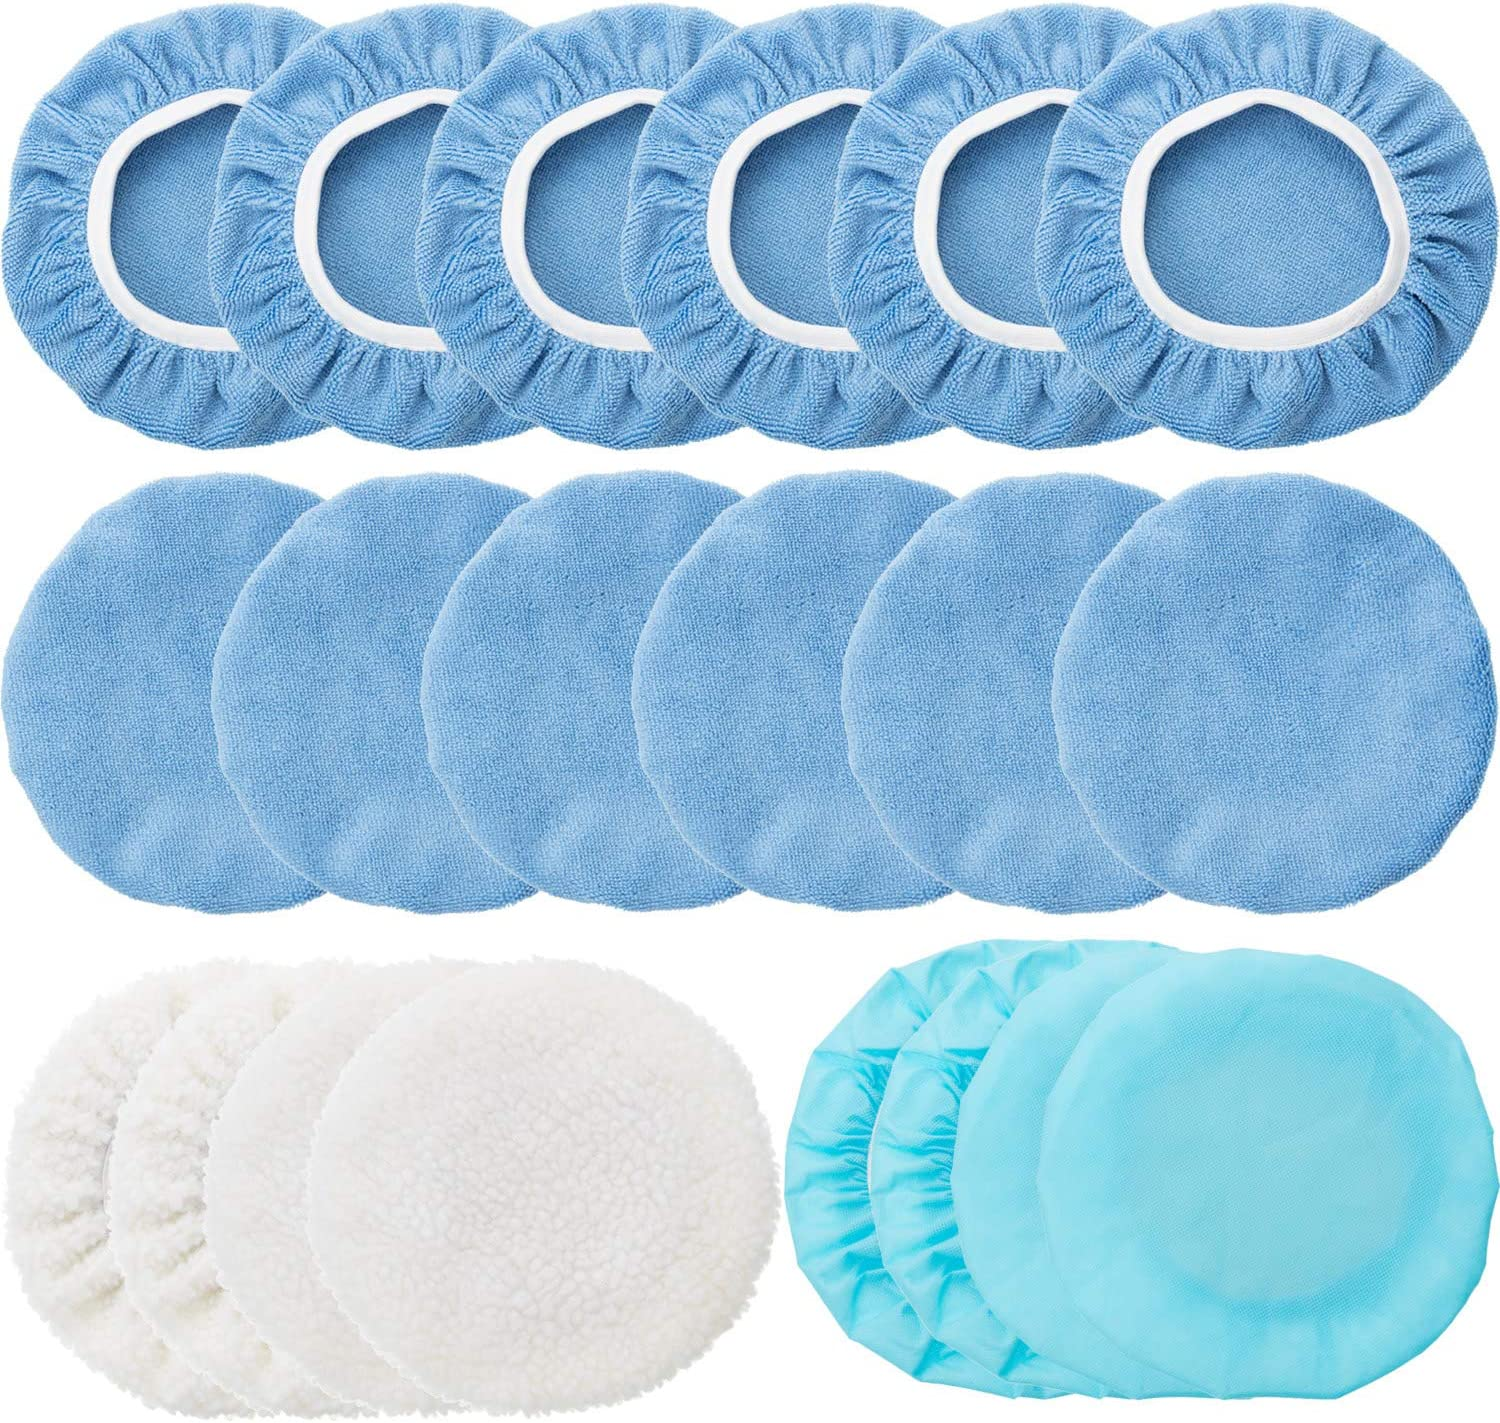 20 Pieces Car Polisher Pad Bonnet Microfiber Max Baxer Bonnet Polishing Bonnet Buffing Pad Cover (9-10 Inches)